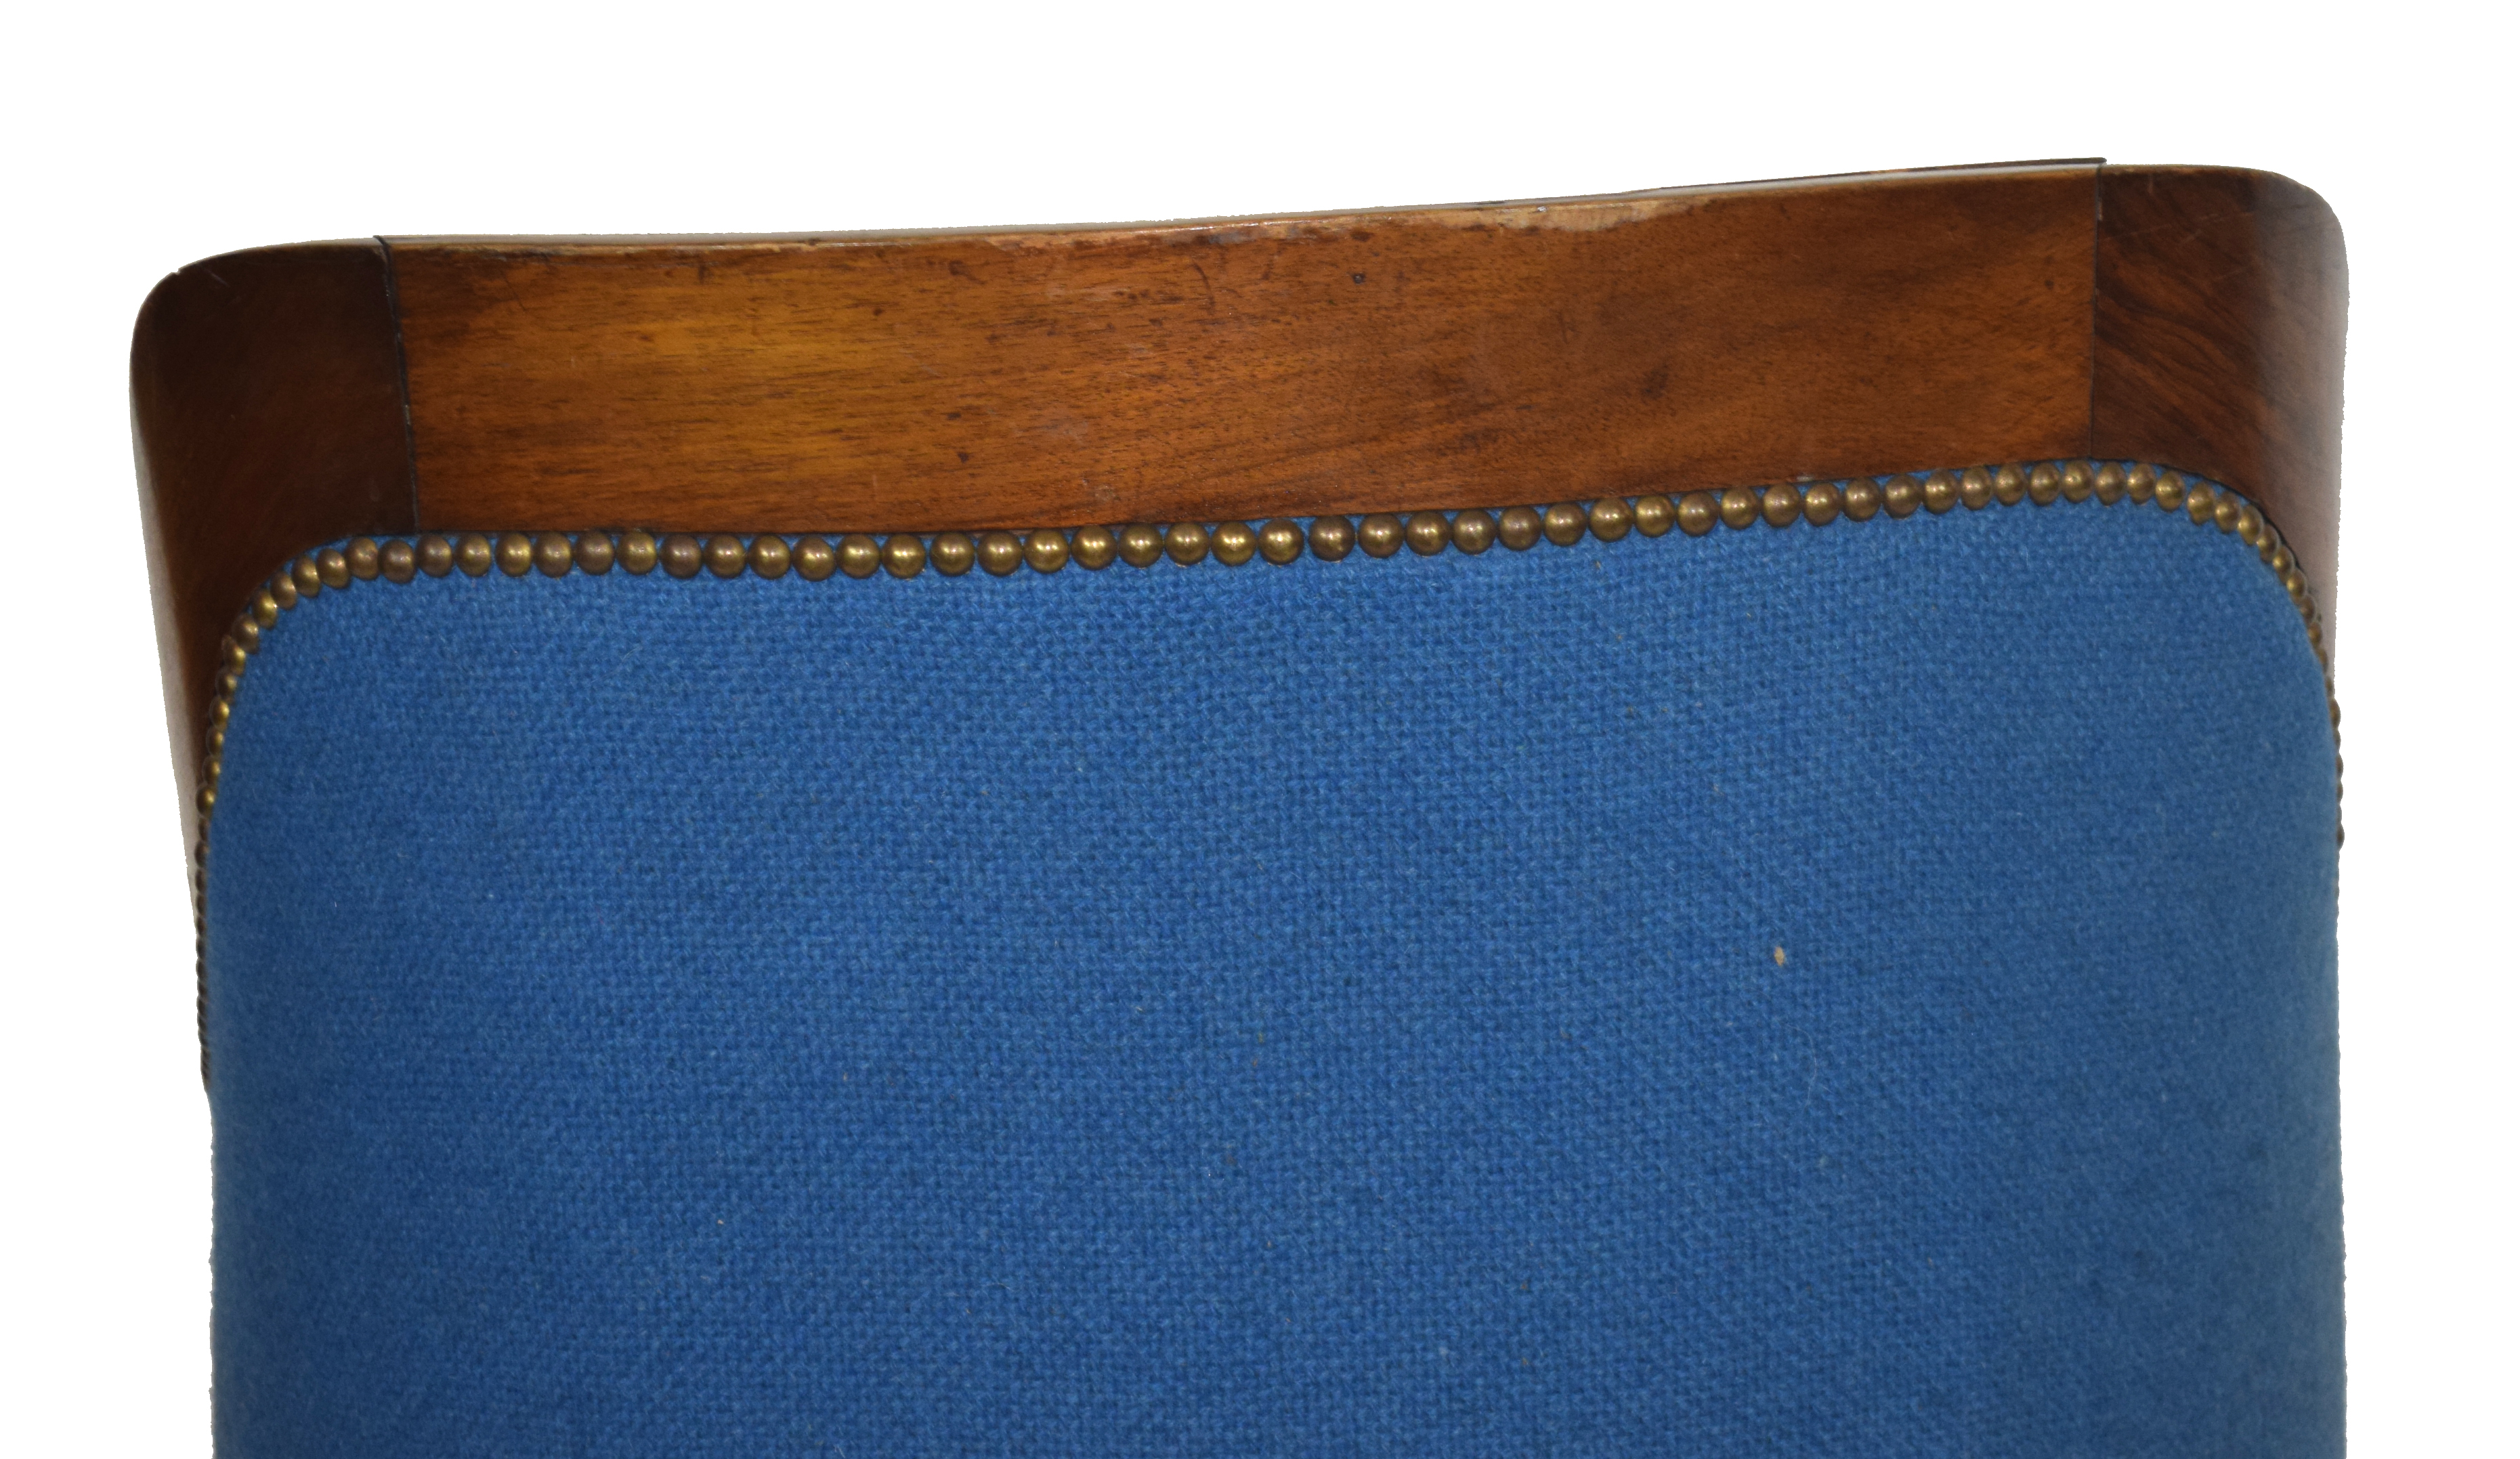 Late 19th/early 20th century mahogany framed tub chair with blue upholstery, 58cm wide Condition: - Image 5 of 5